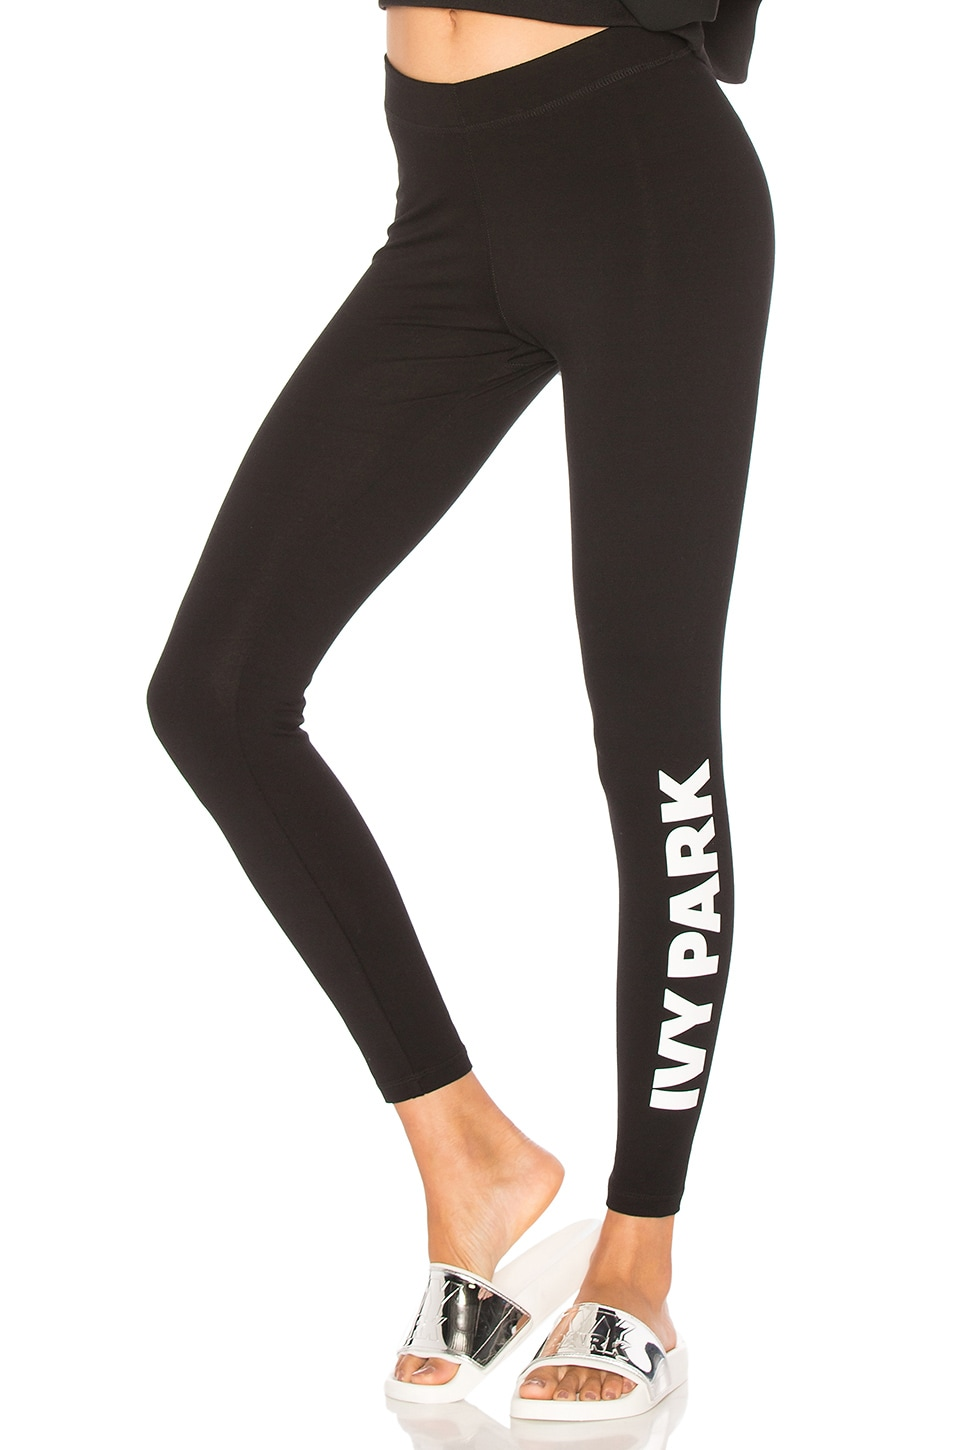 IVY PARK Casual Legging in Black & White Logo